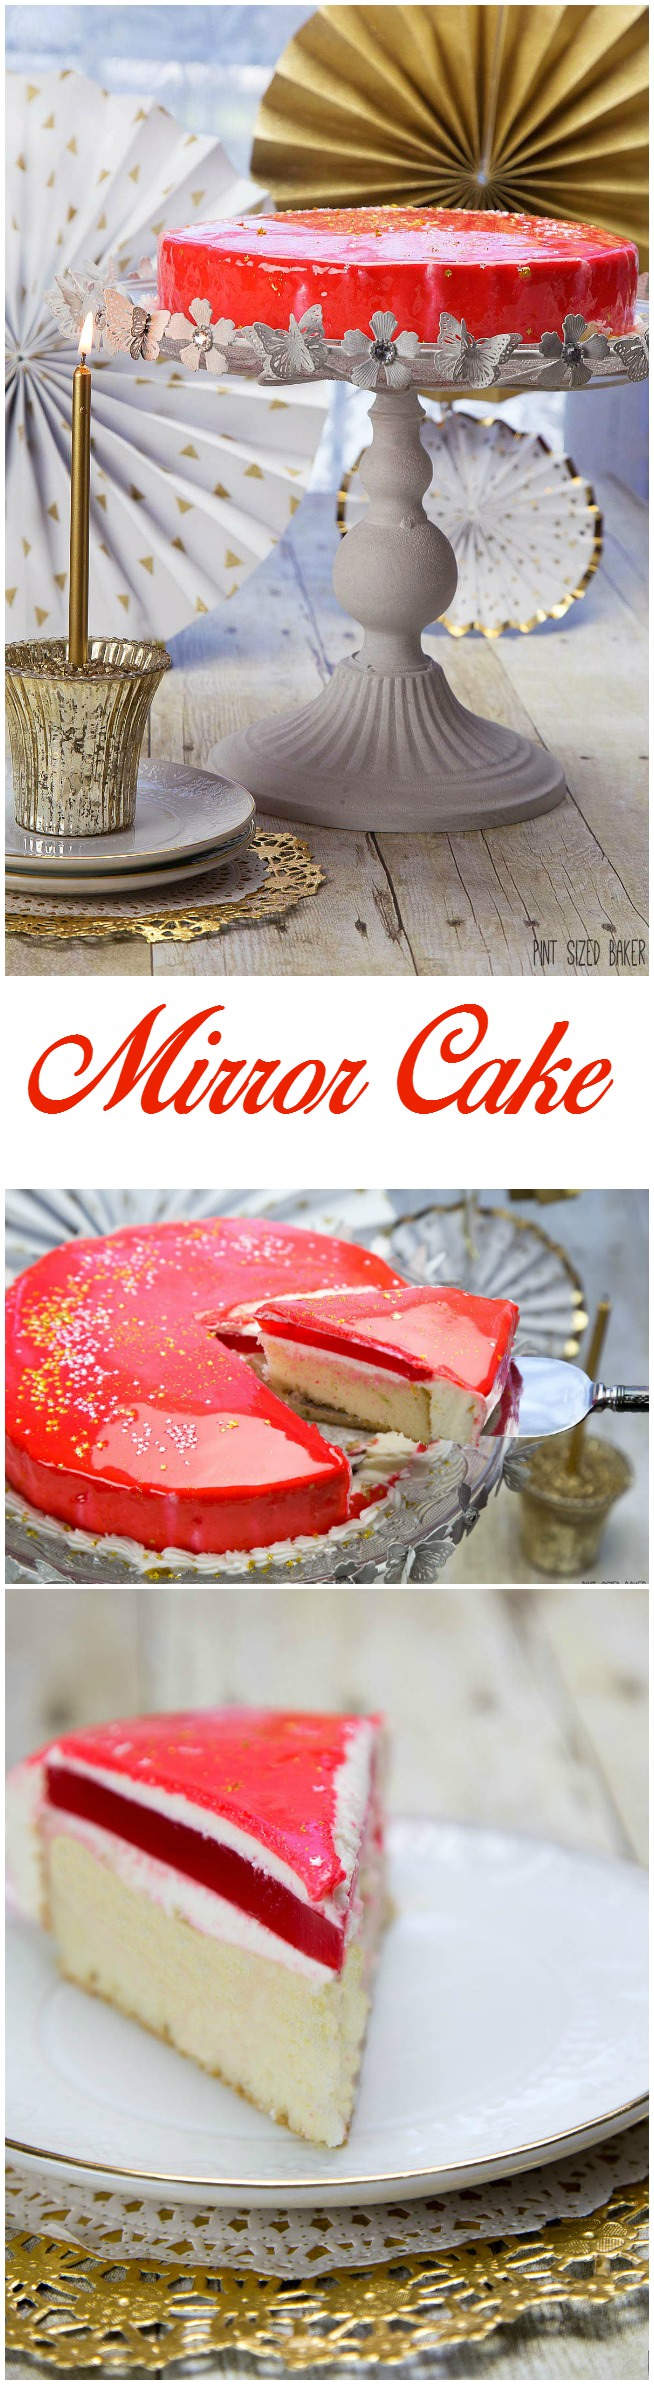 Birthday Cake Images For Special Person : Mirror Birthday Cake Tutorial - Pint Sized Baker